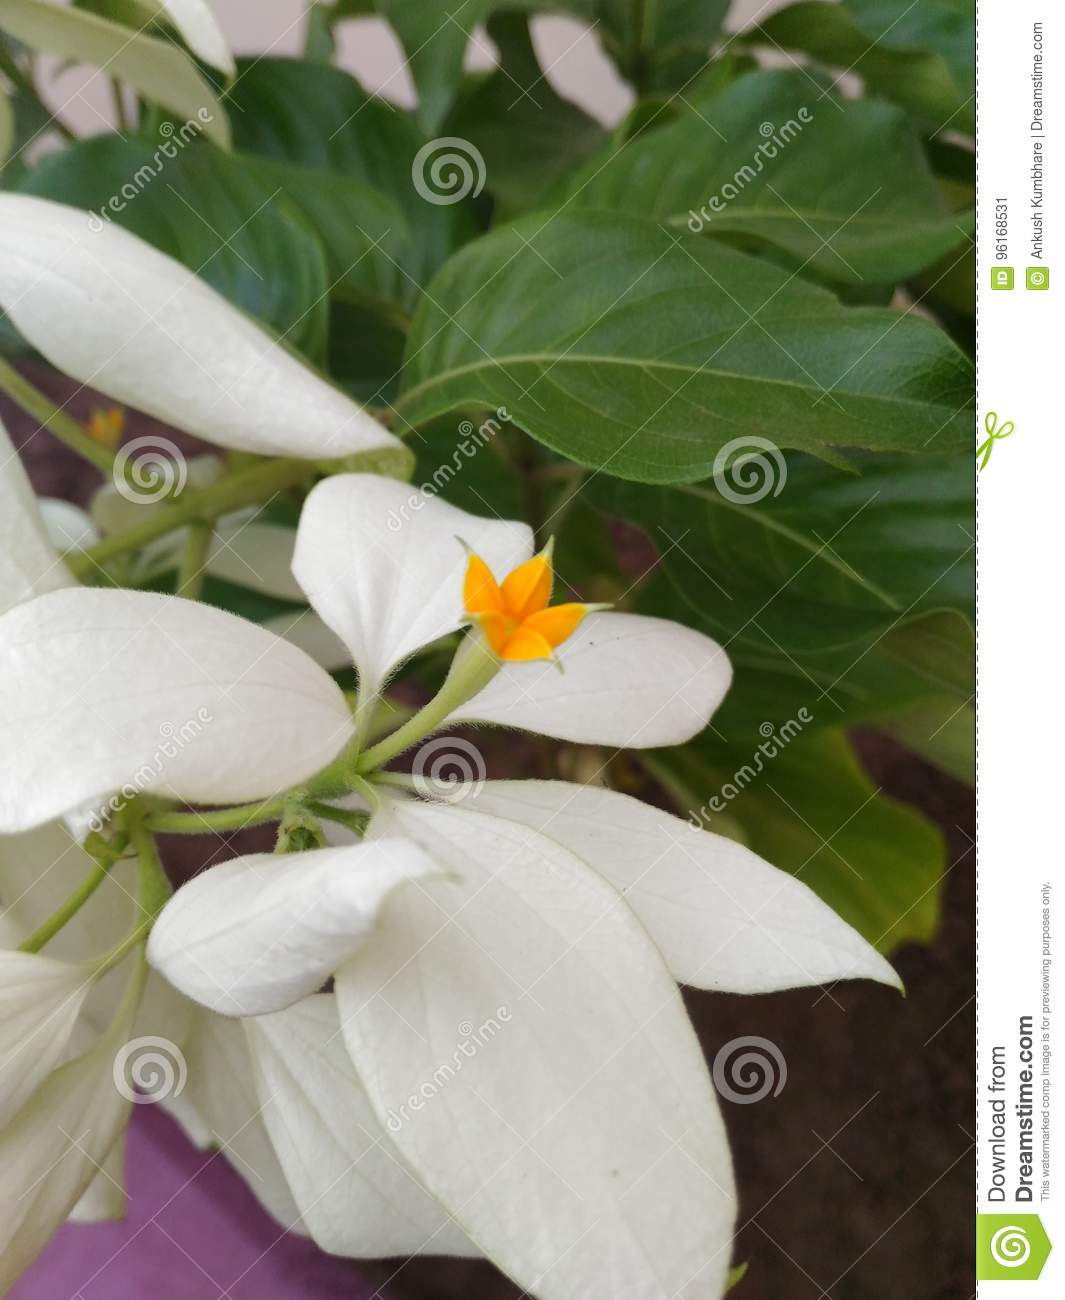 Unique And Special Yellow White Flowers Blooming In The Same Plant